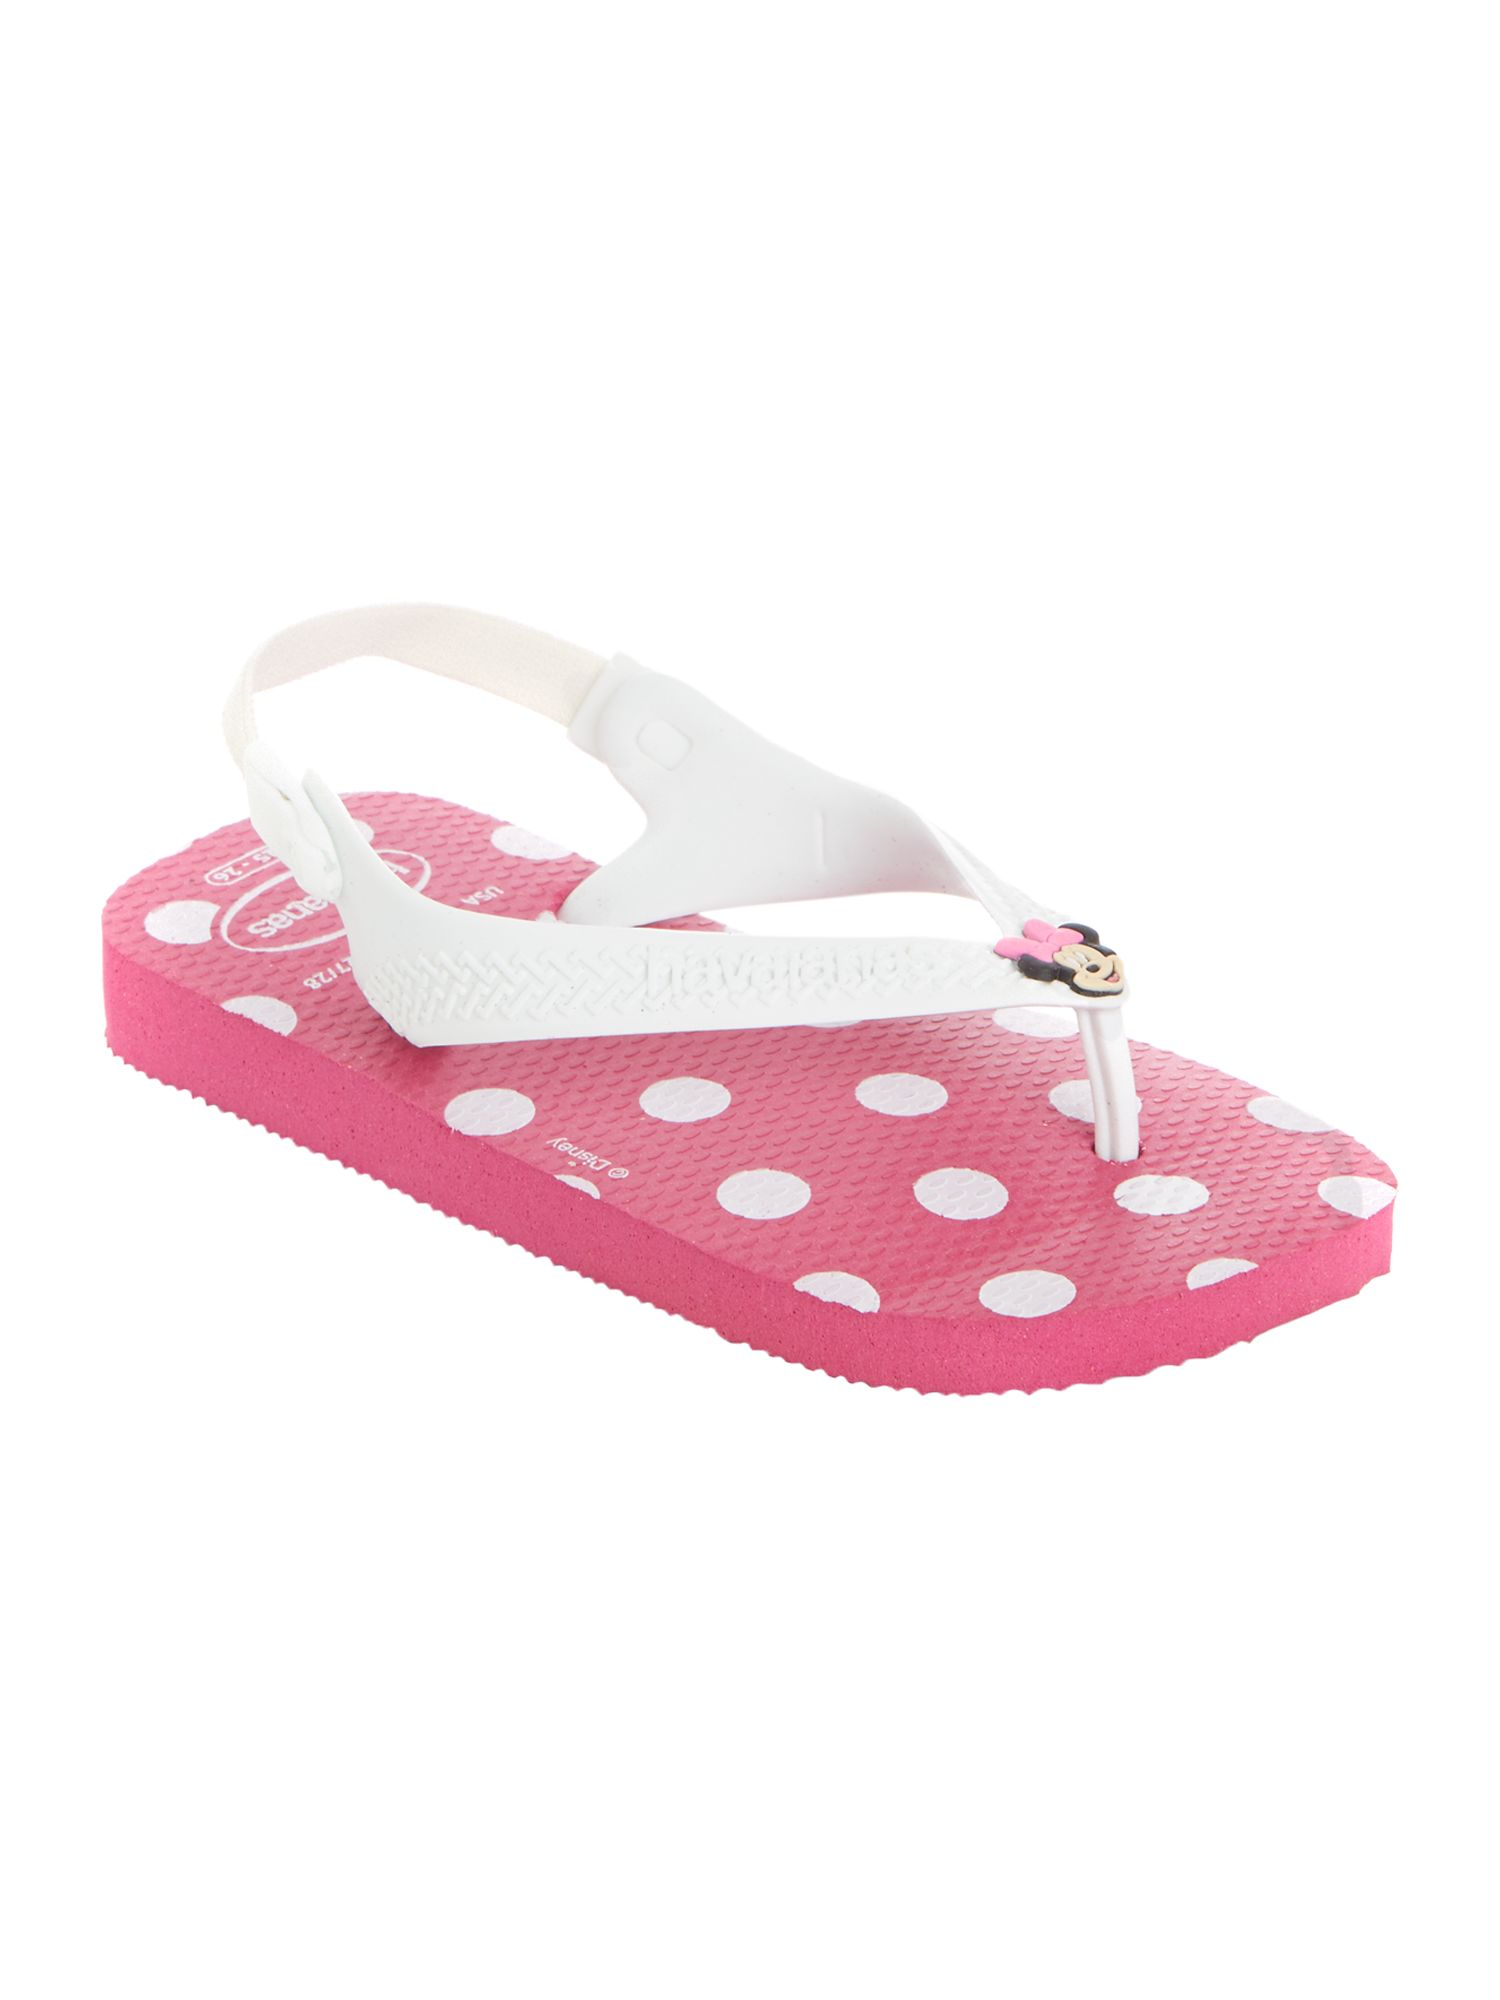 Baby girls Minnie Mouse flip flop